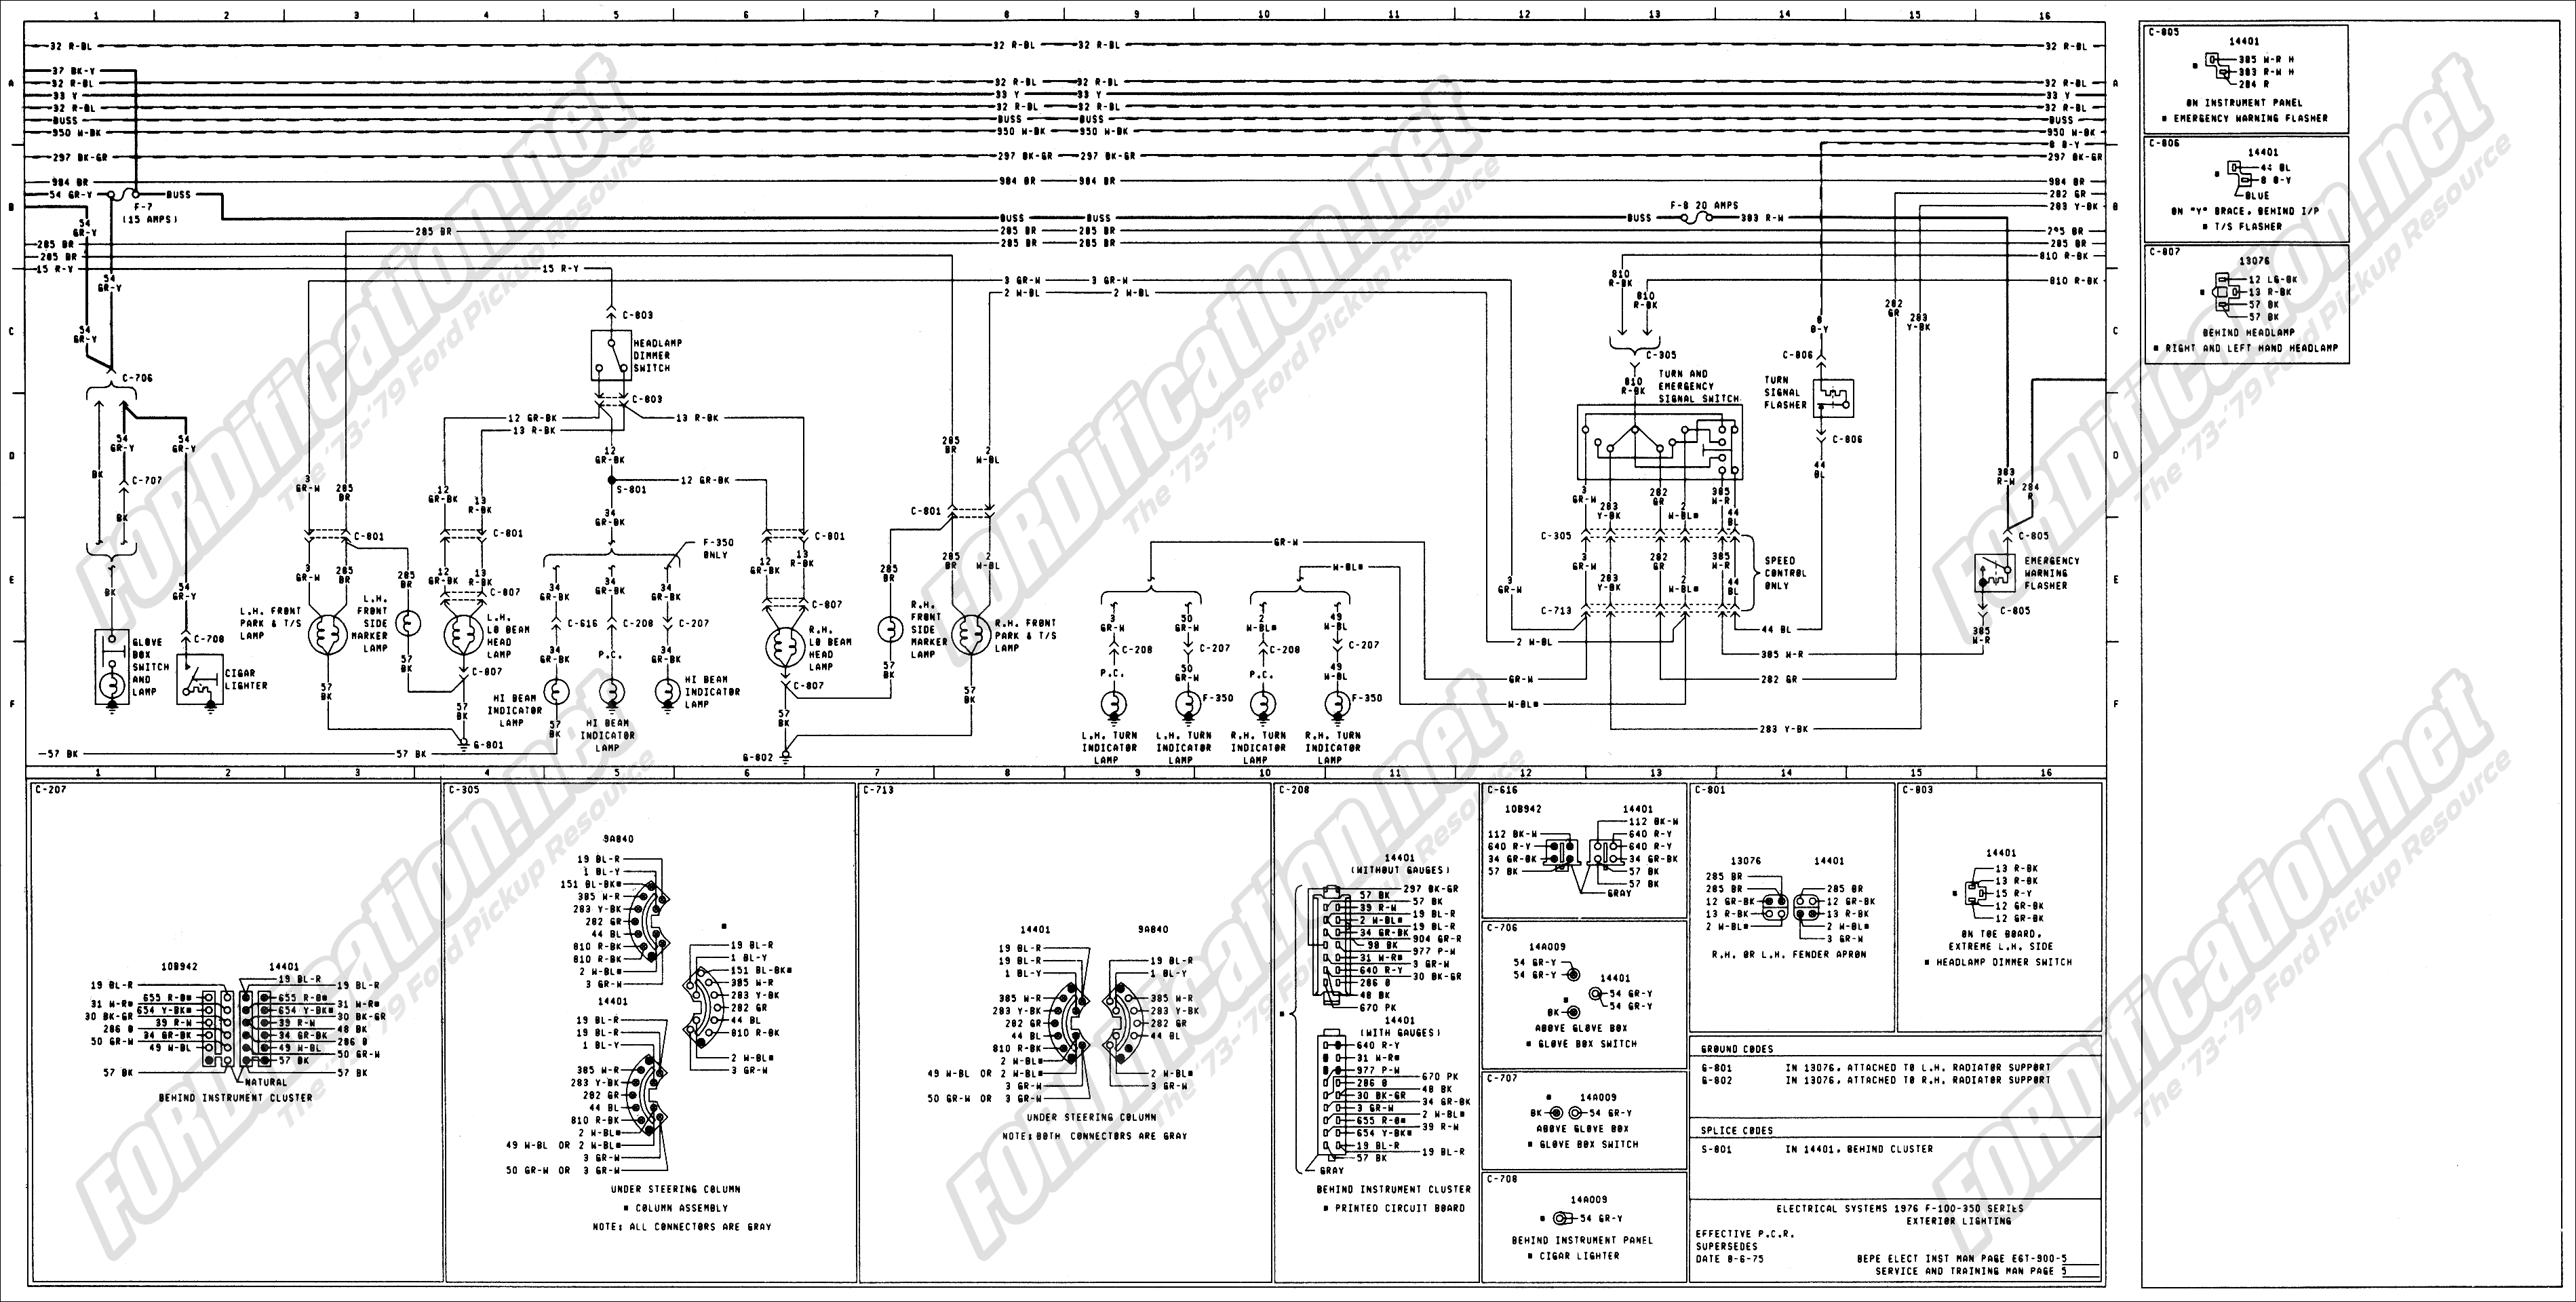 1976 ford ignition wiring diagram wiring data rh unroutine co